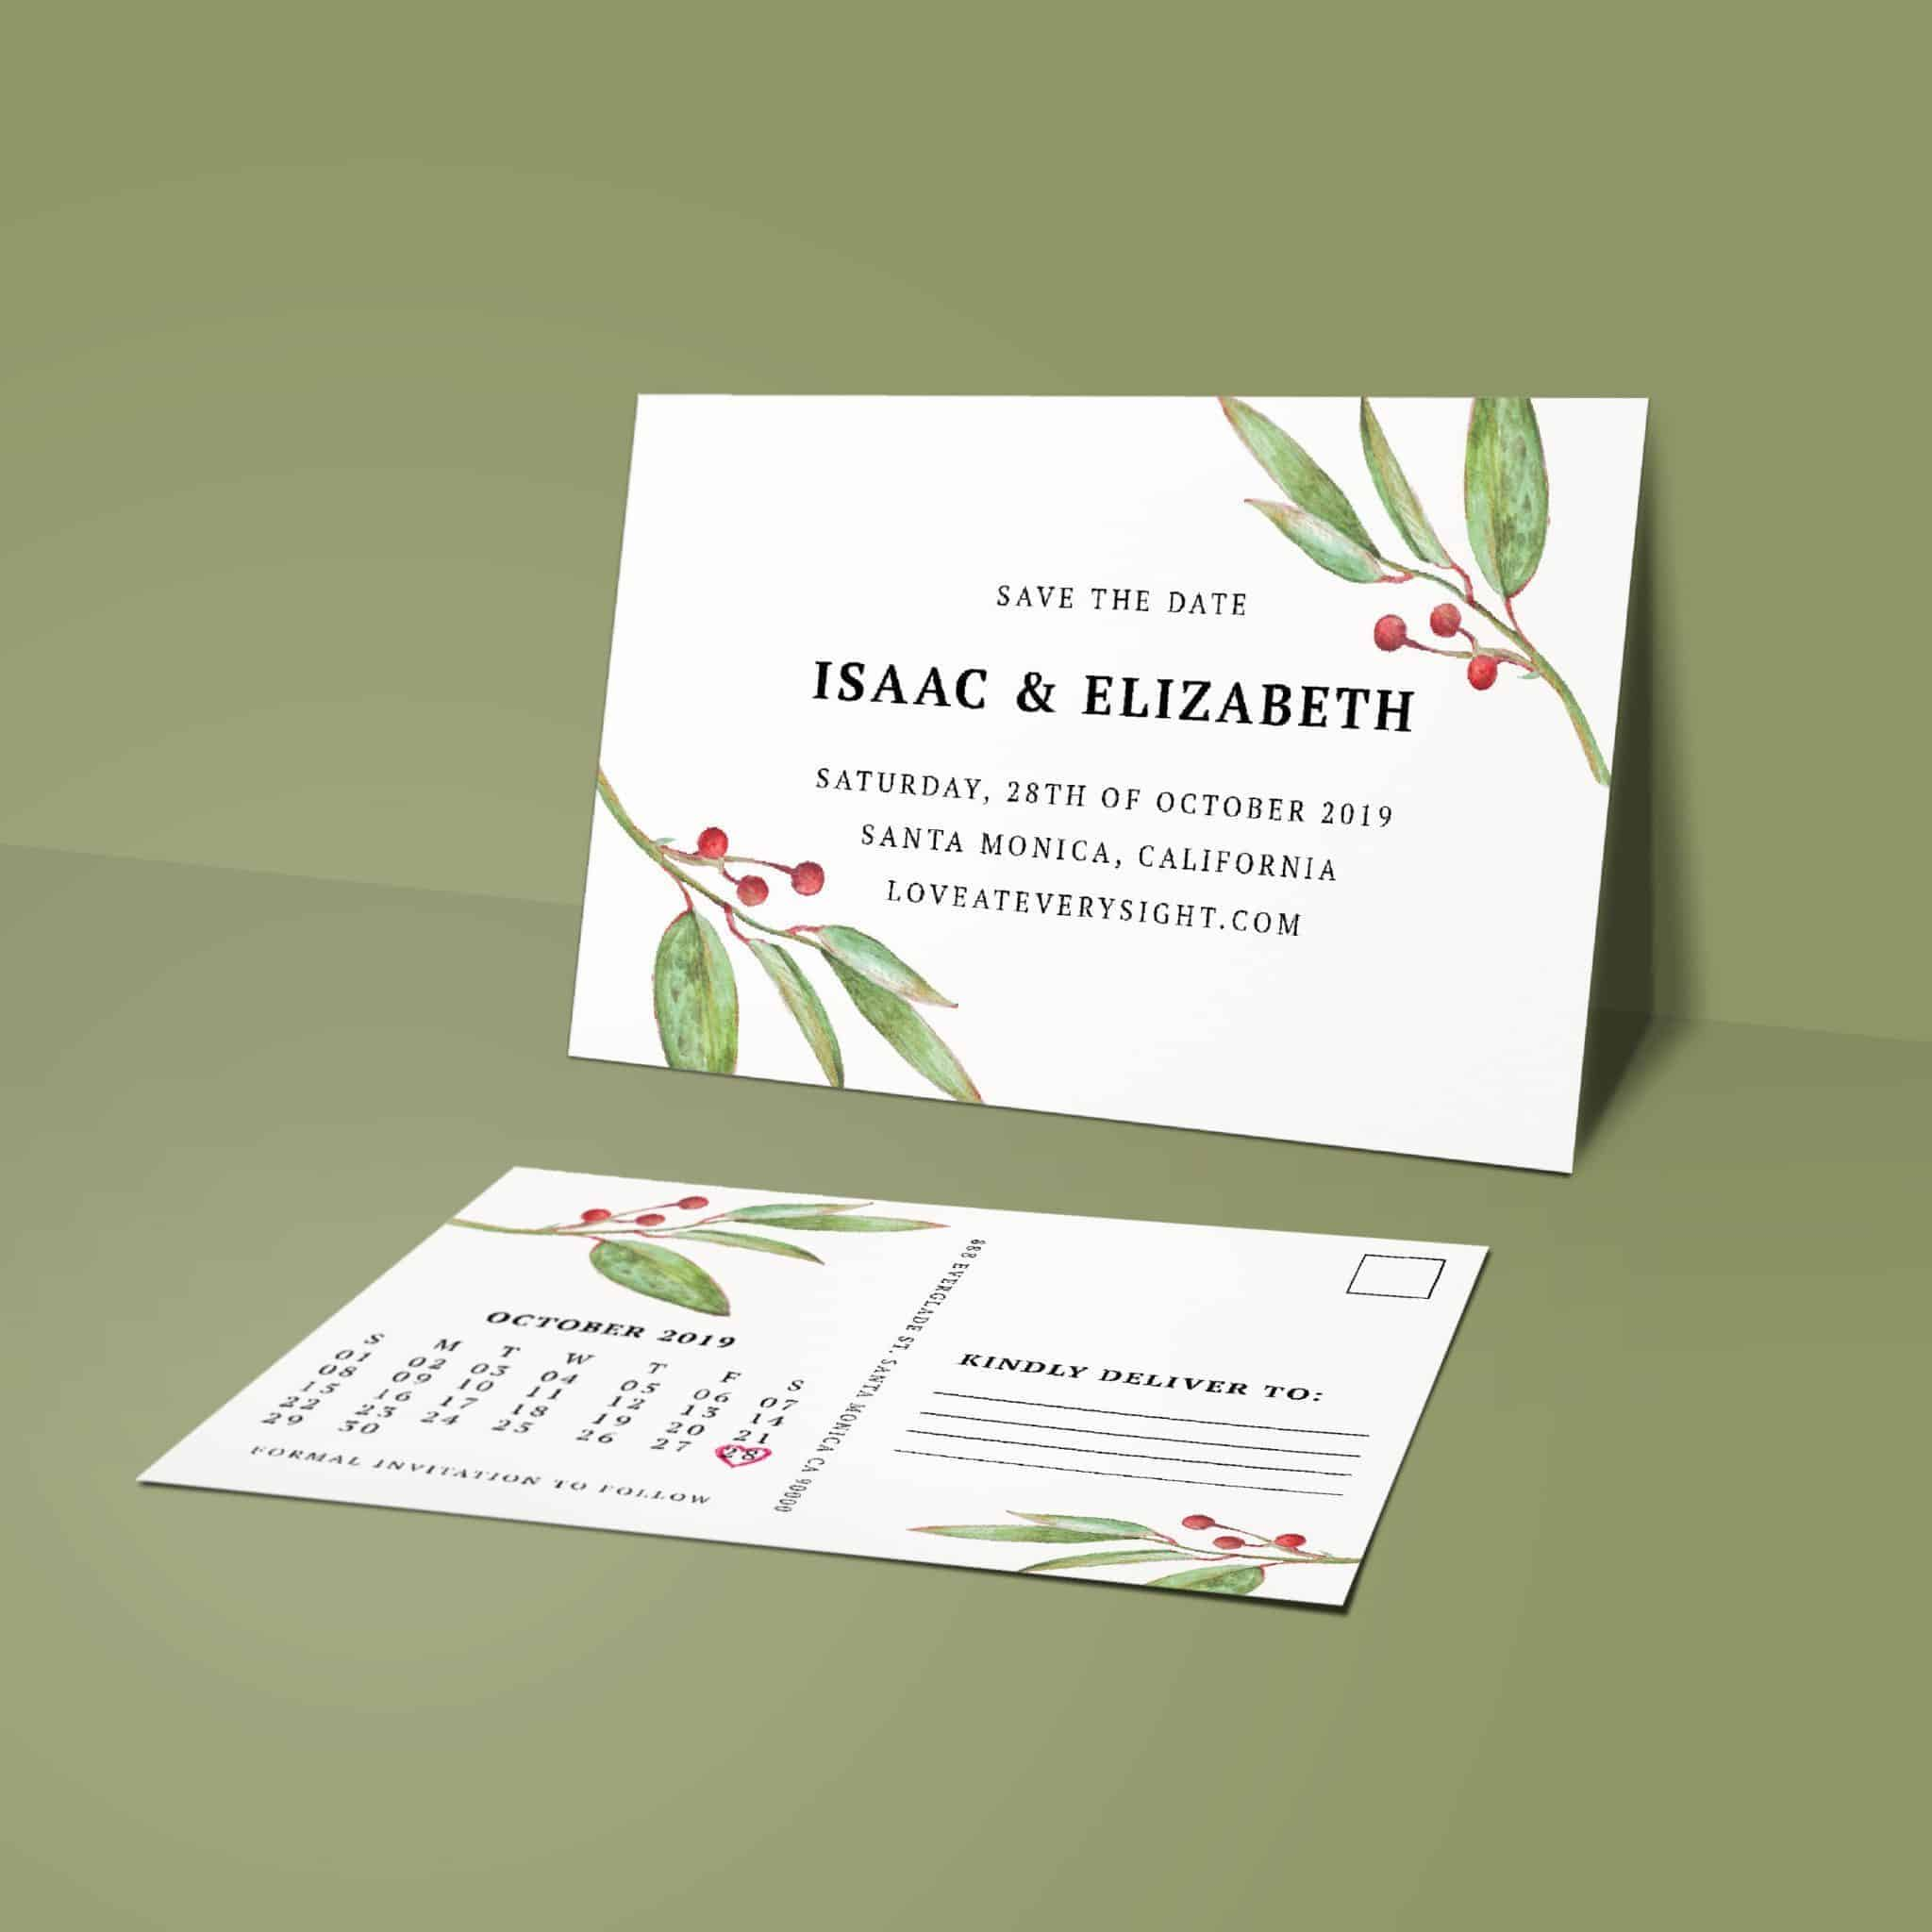 Attractive Rustic Save the Date Postcards, Marriage Calendar Save the Date Post Cards, Floral- Garden Flowers